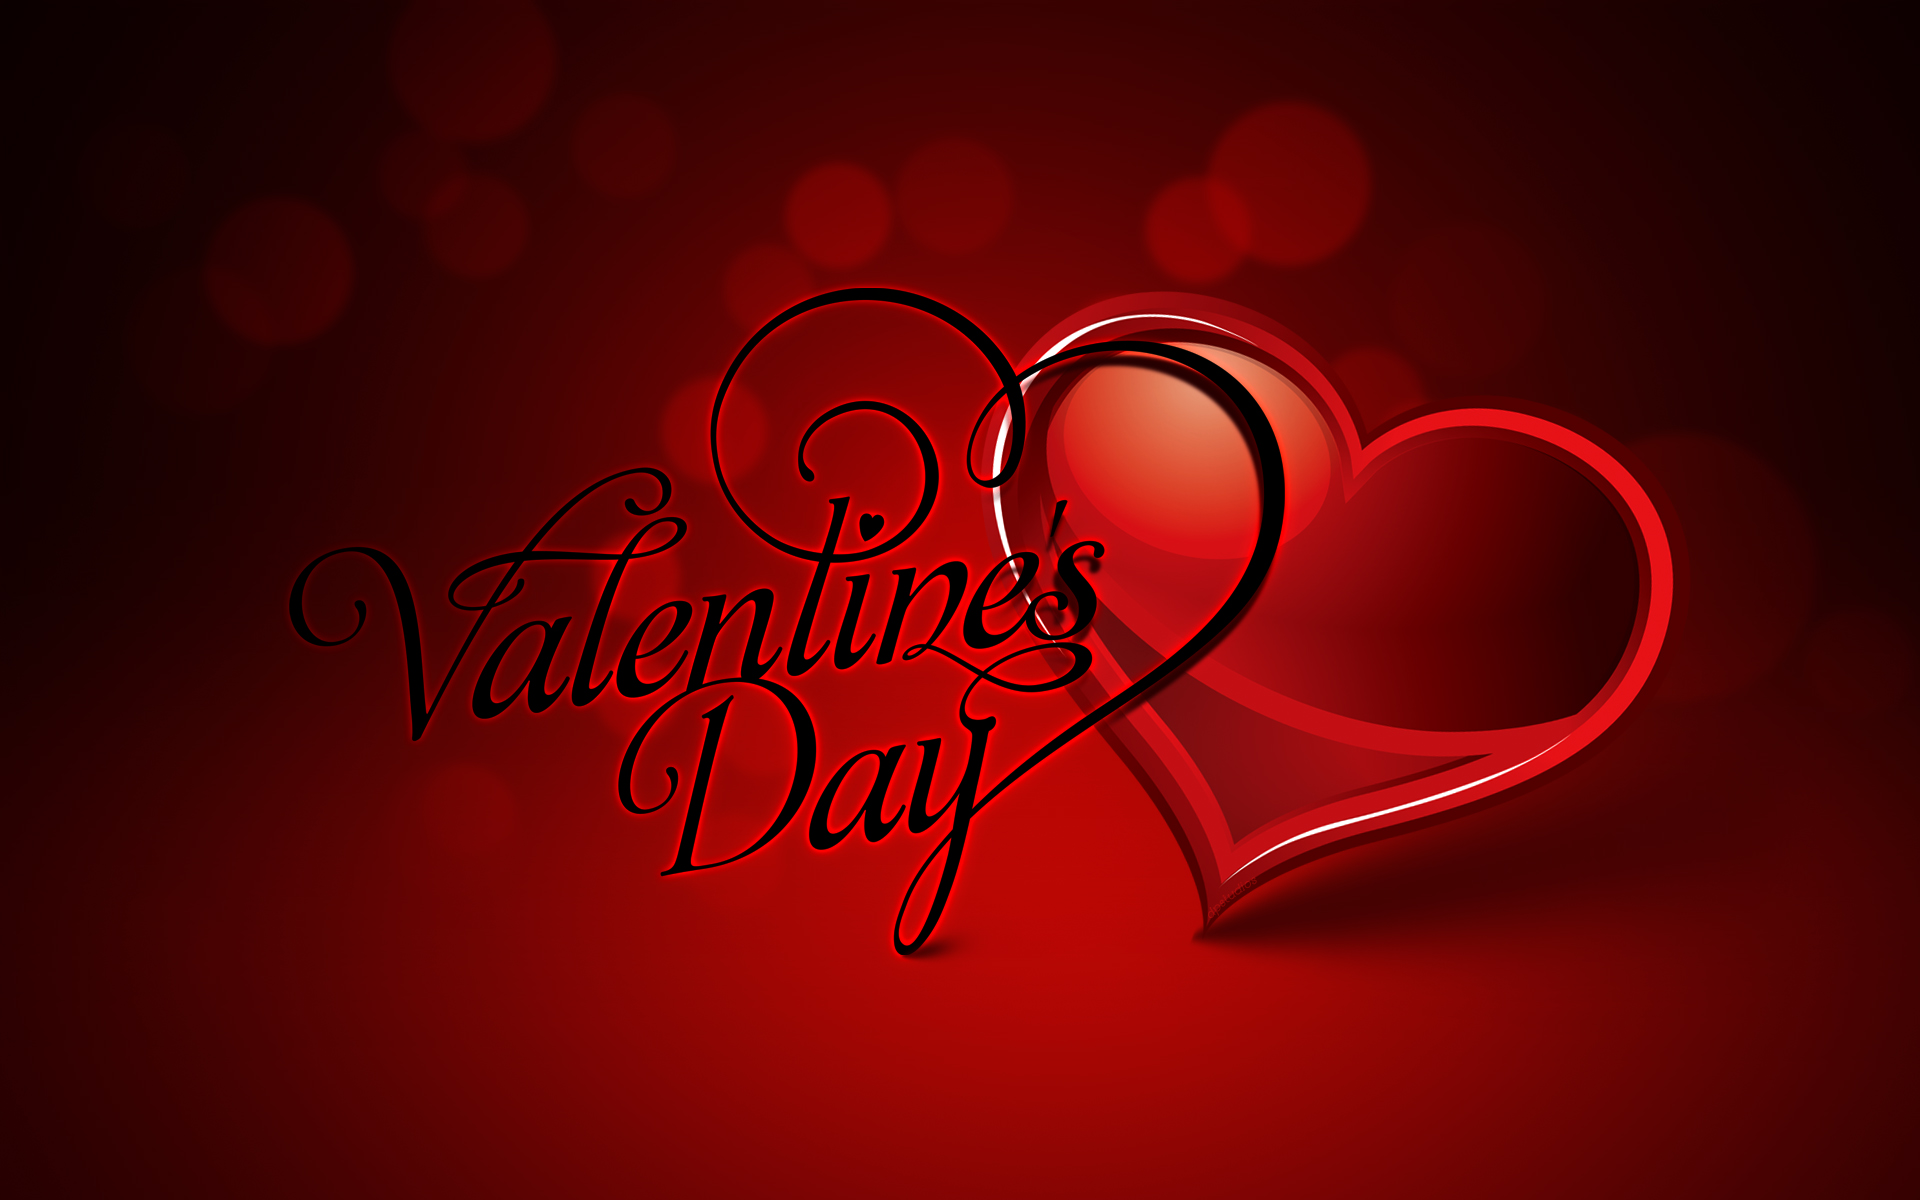 valentines-day event planning